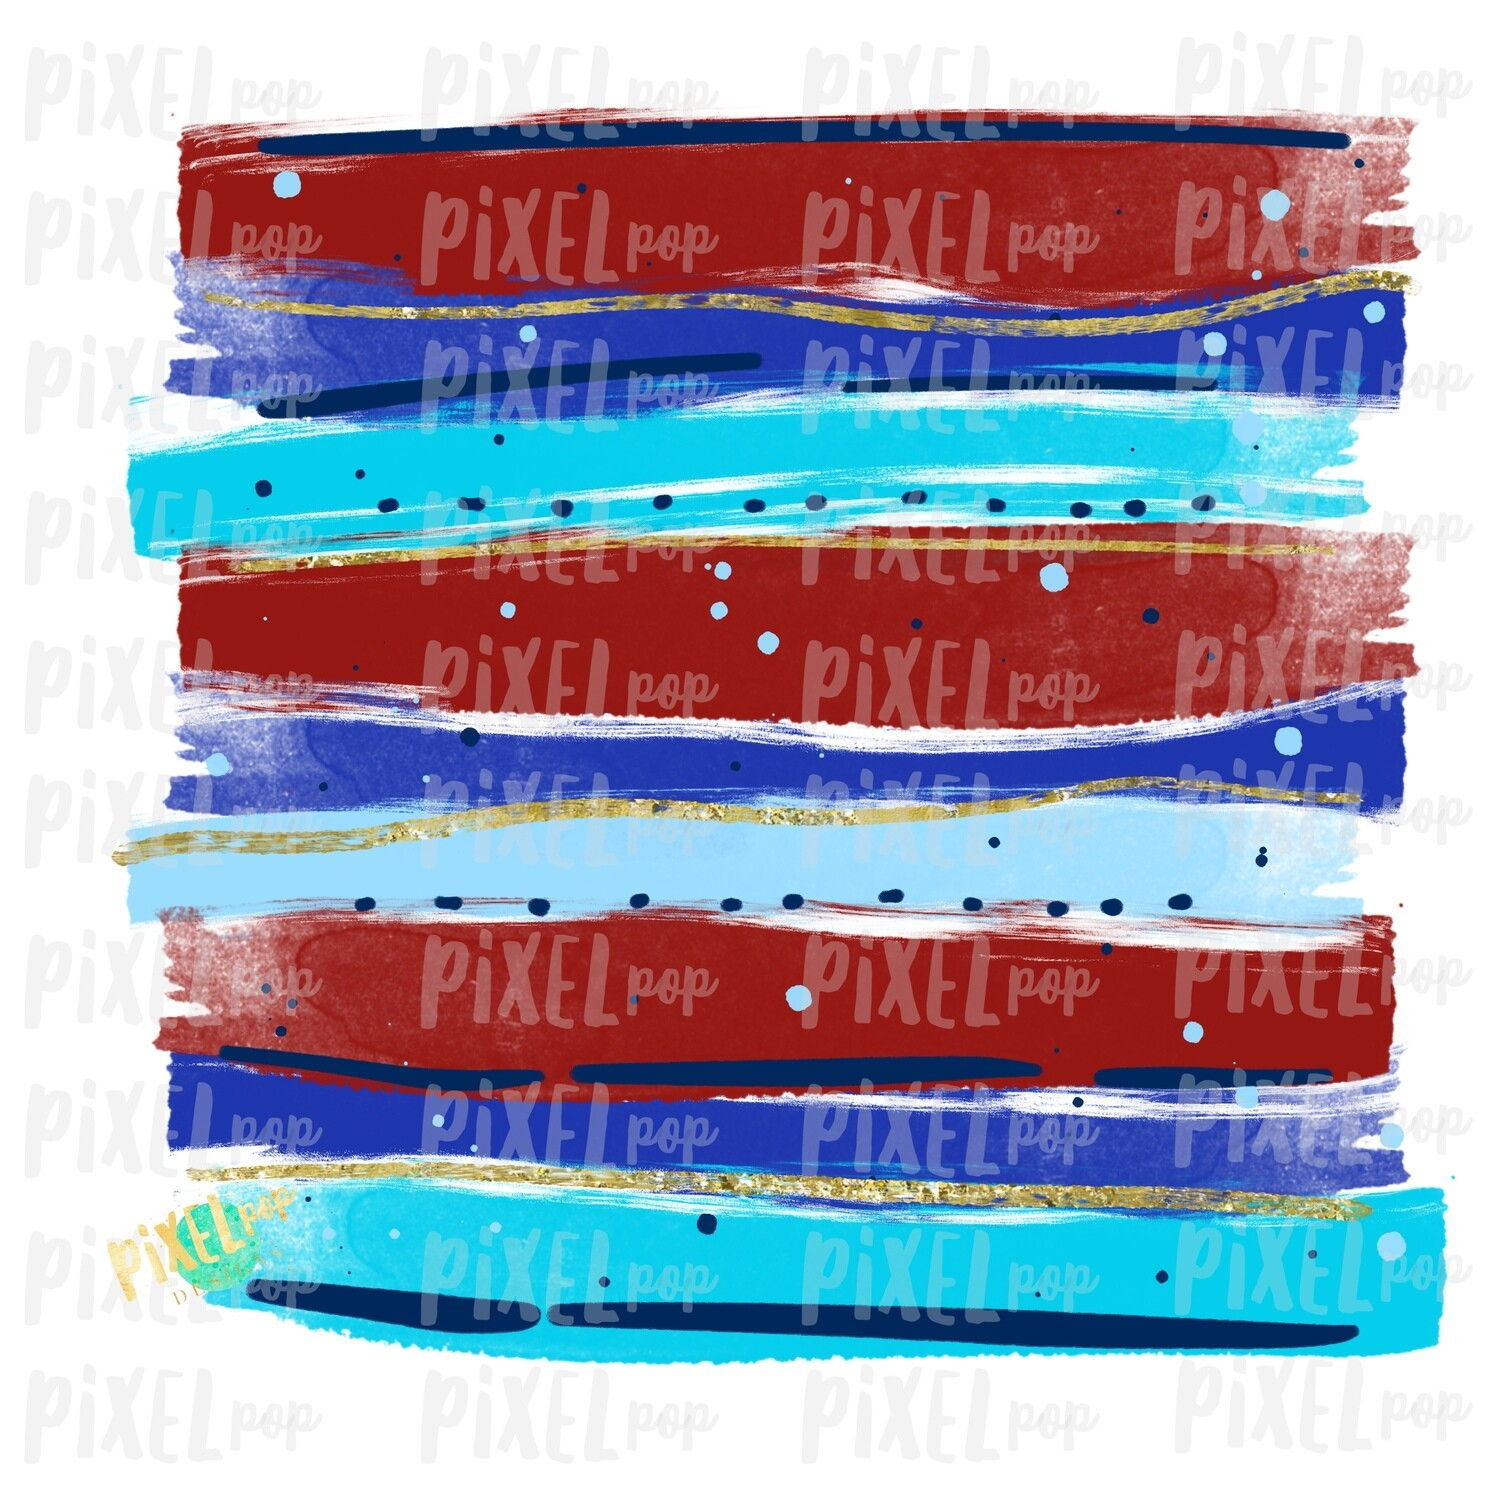 Red, White, Blue, Gold Horizontal Brush Stroke Background PNG   4th of July   Watercolor Background Design   Digital Art   Hand Painted Art